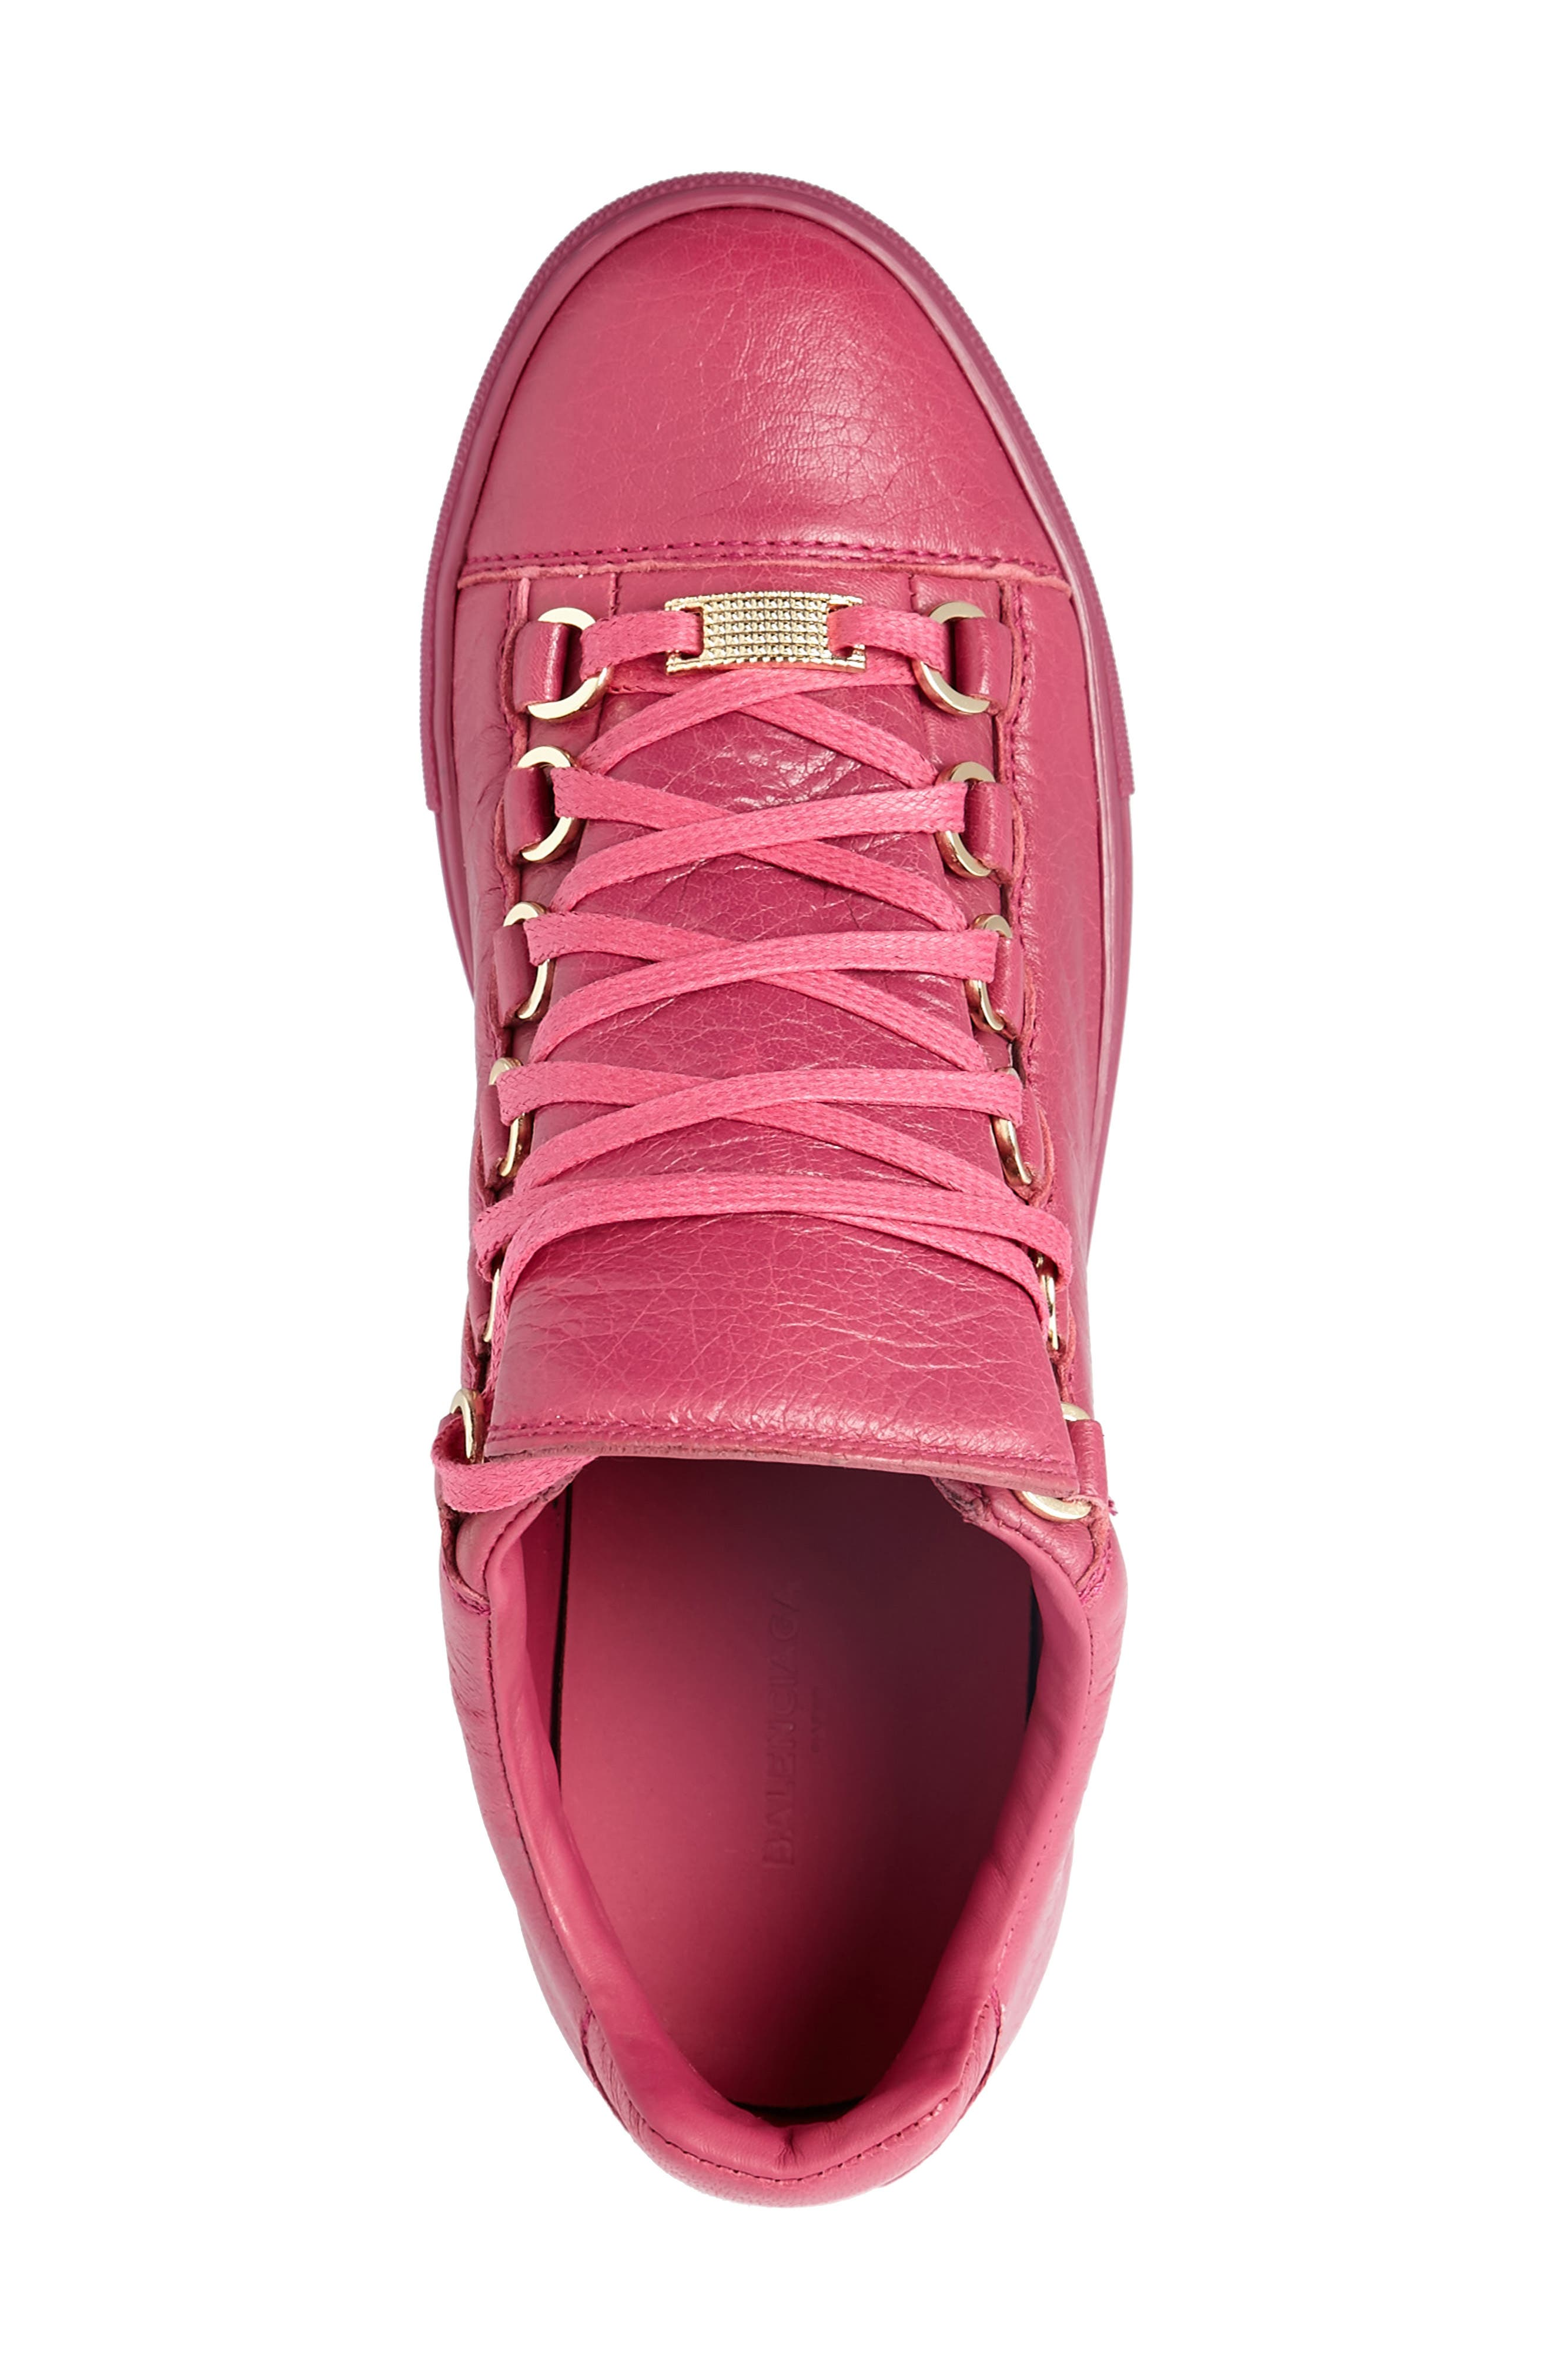 Low Top Sneaker,                             Alternate thumbnail 20, color,